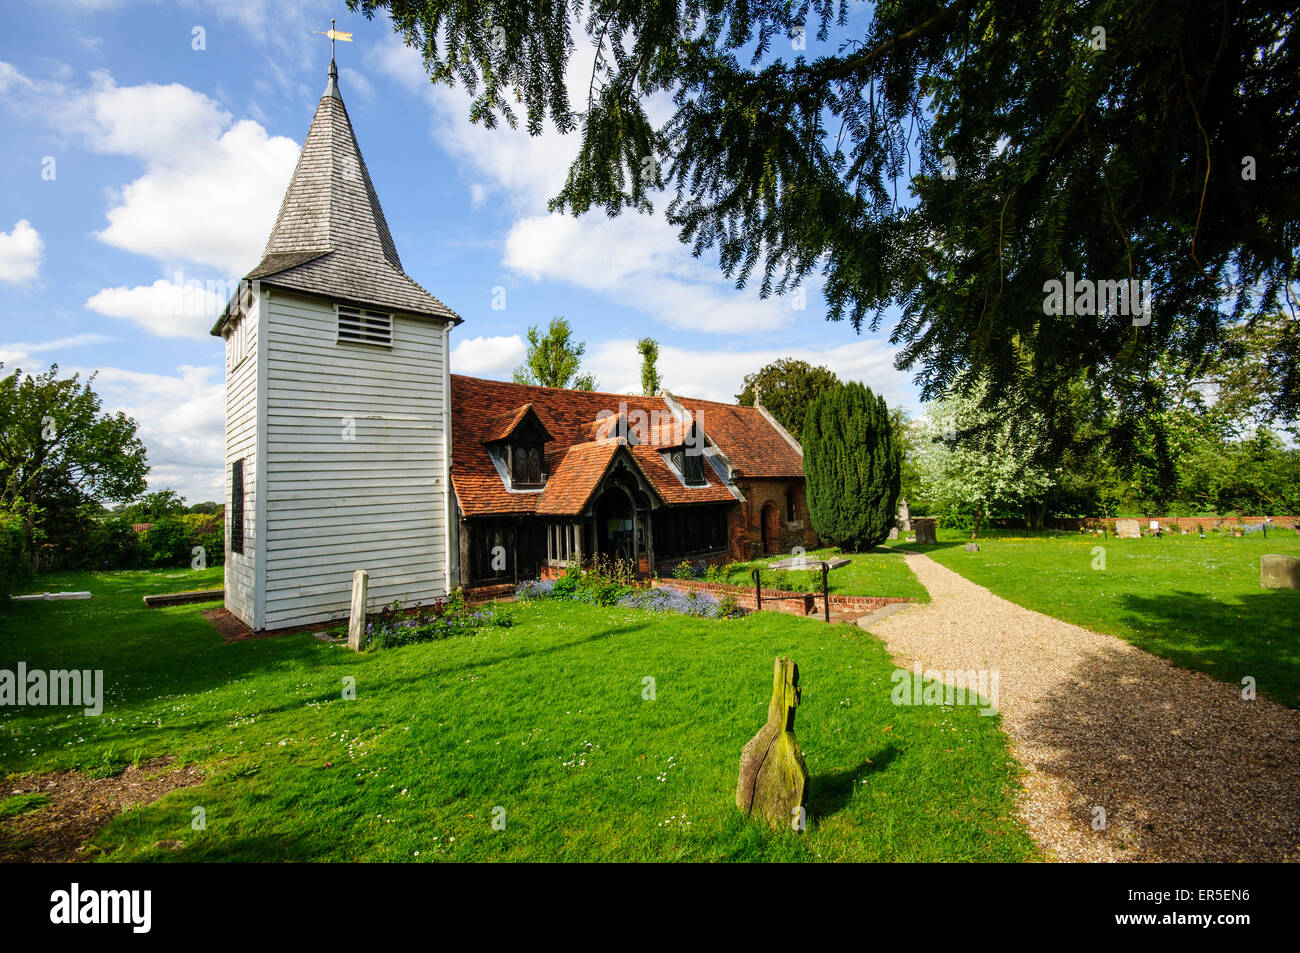 St. Andrew's Church, Greensted, Essex,England, UK - Stock Image